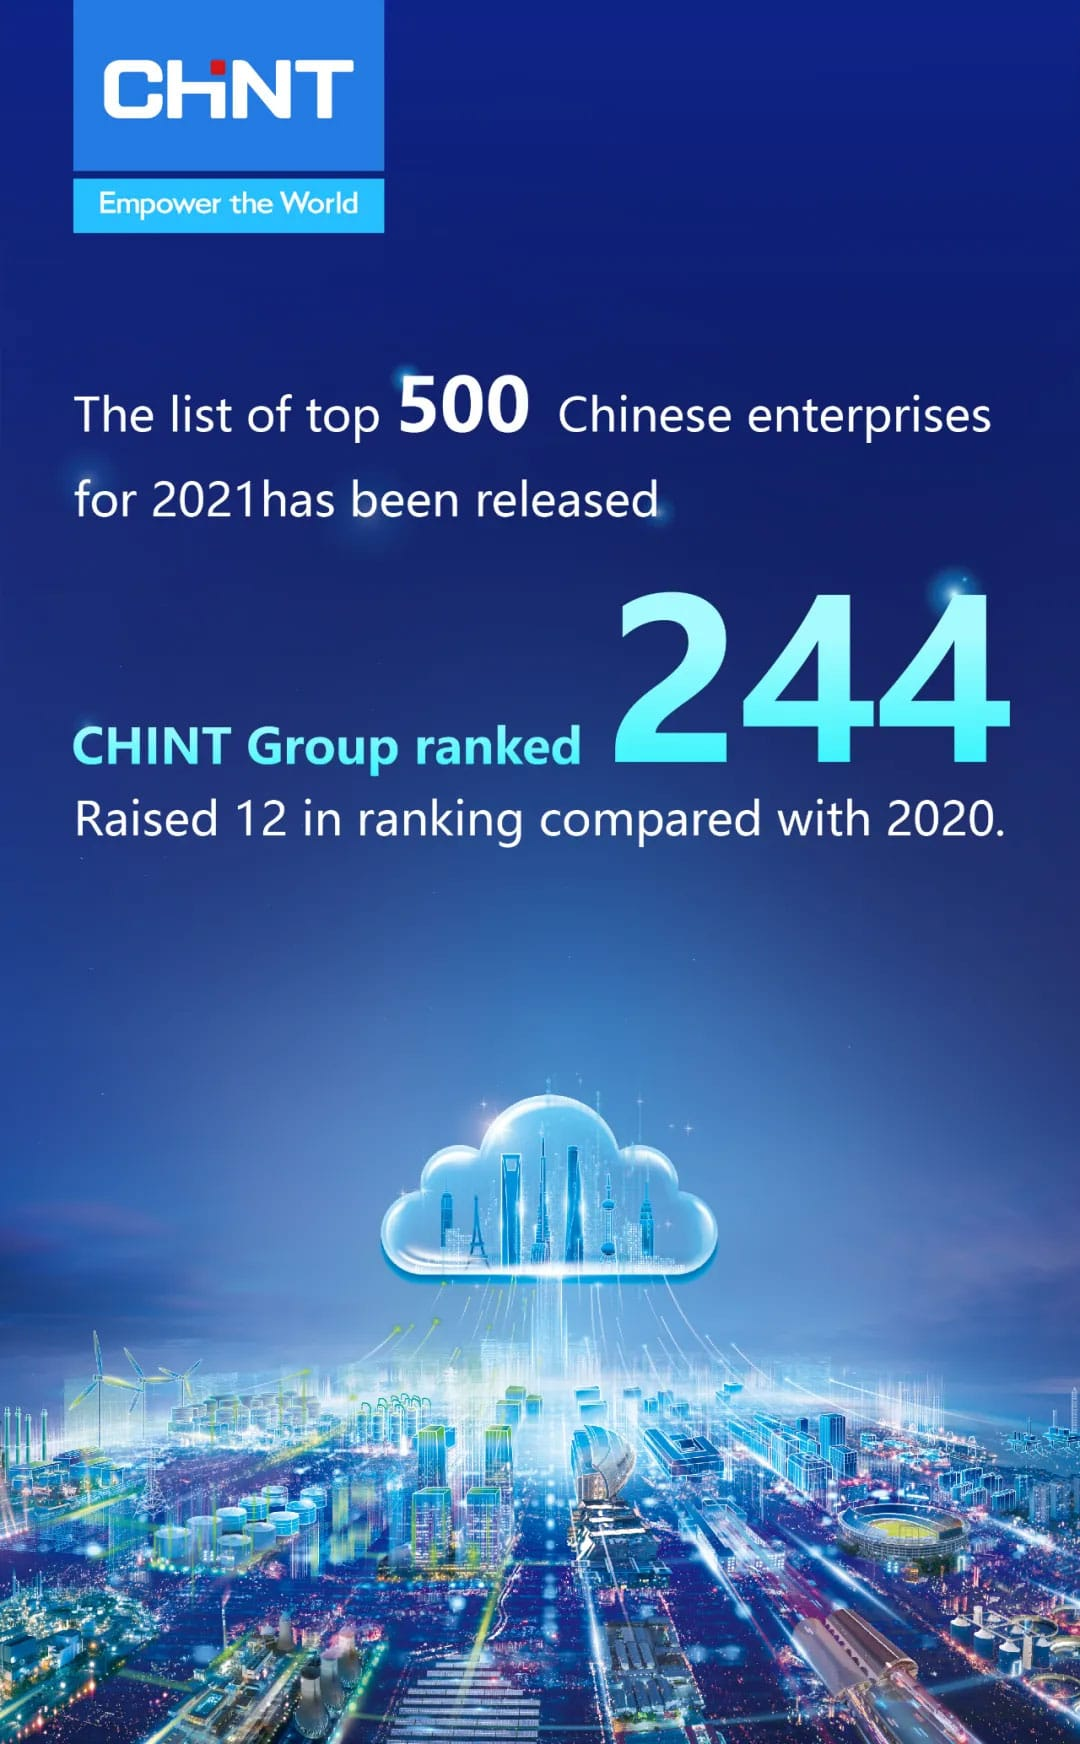 CHINT Got Higher Ranking in the 2021 Top 500 Chinese Enterprises